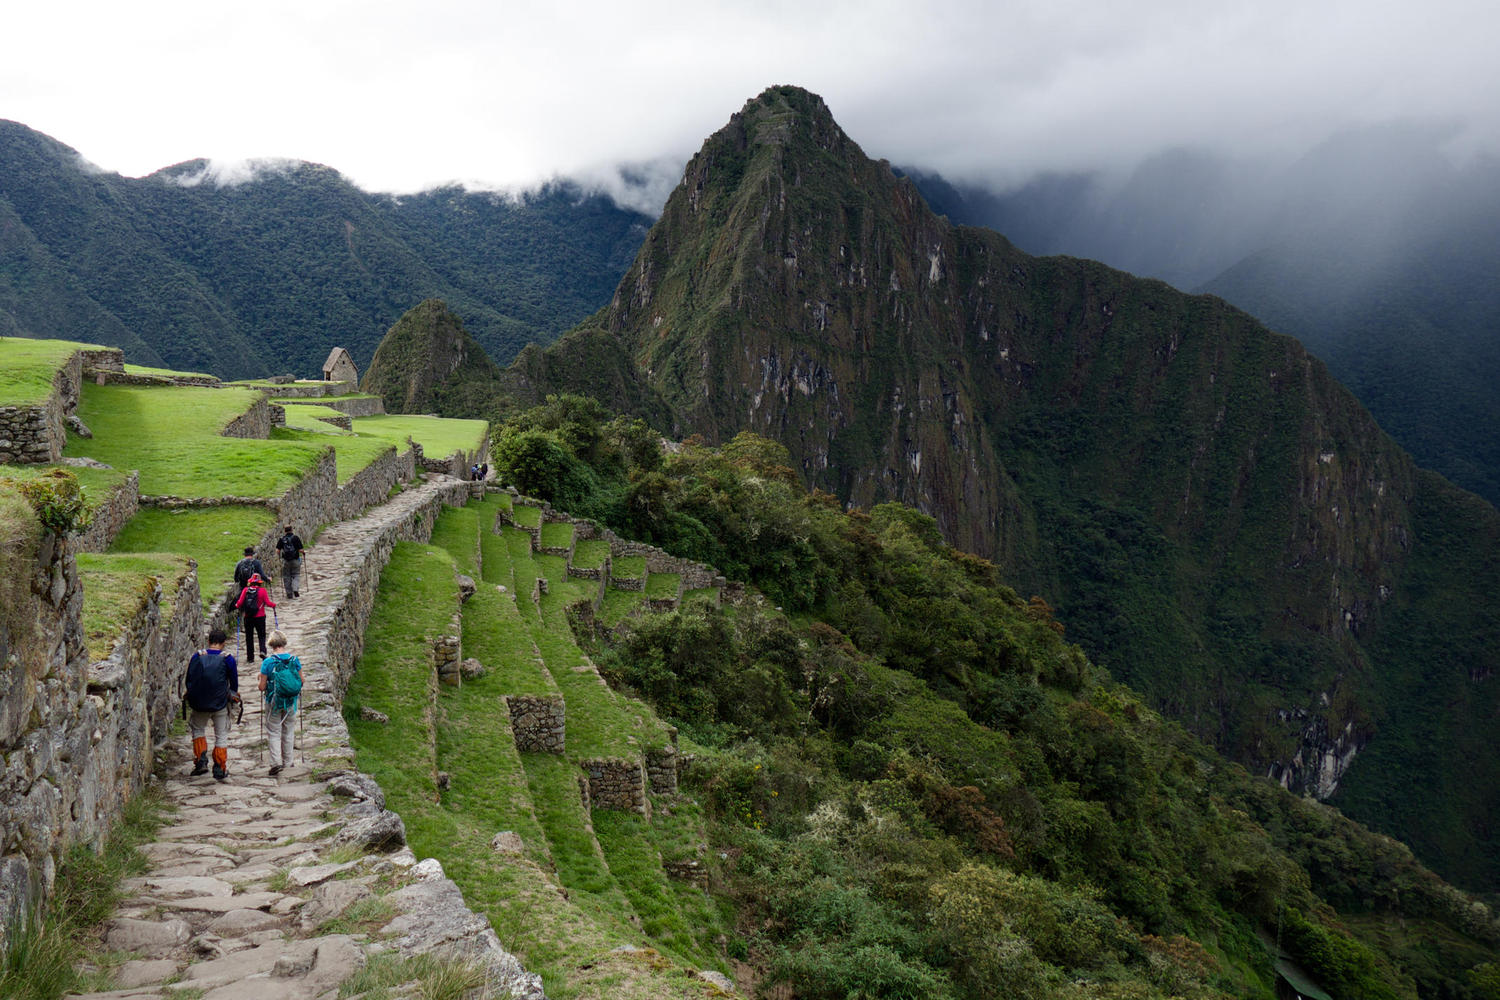 The Inca Trail ends with a walk down to Machu Picchu from the Sun Gate